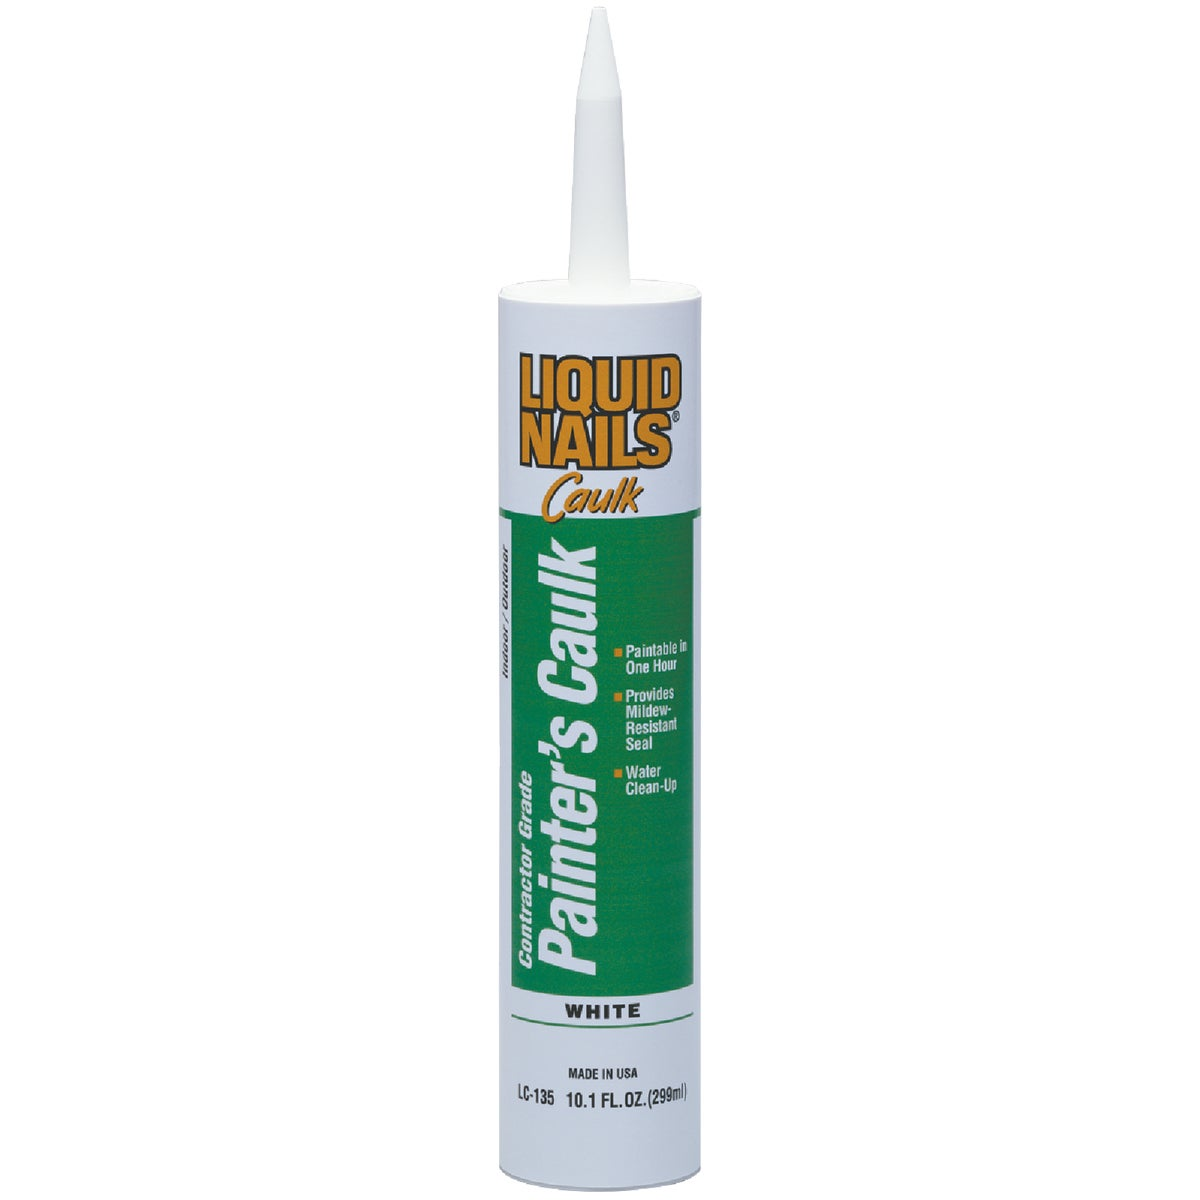 WHT LATEX PAINTERS CAULK - LC-135 by Liquid Nails/akzonob